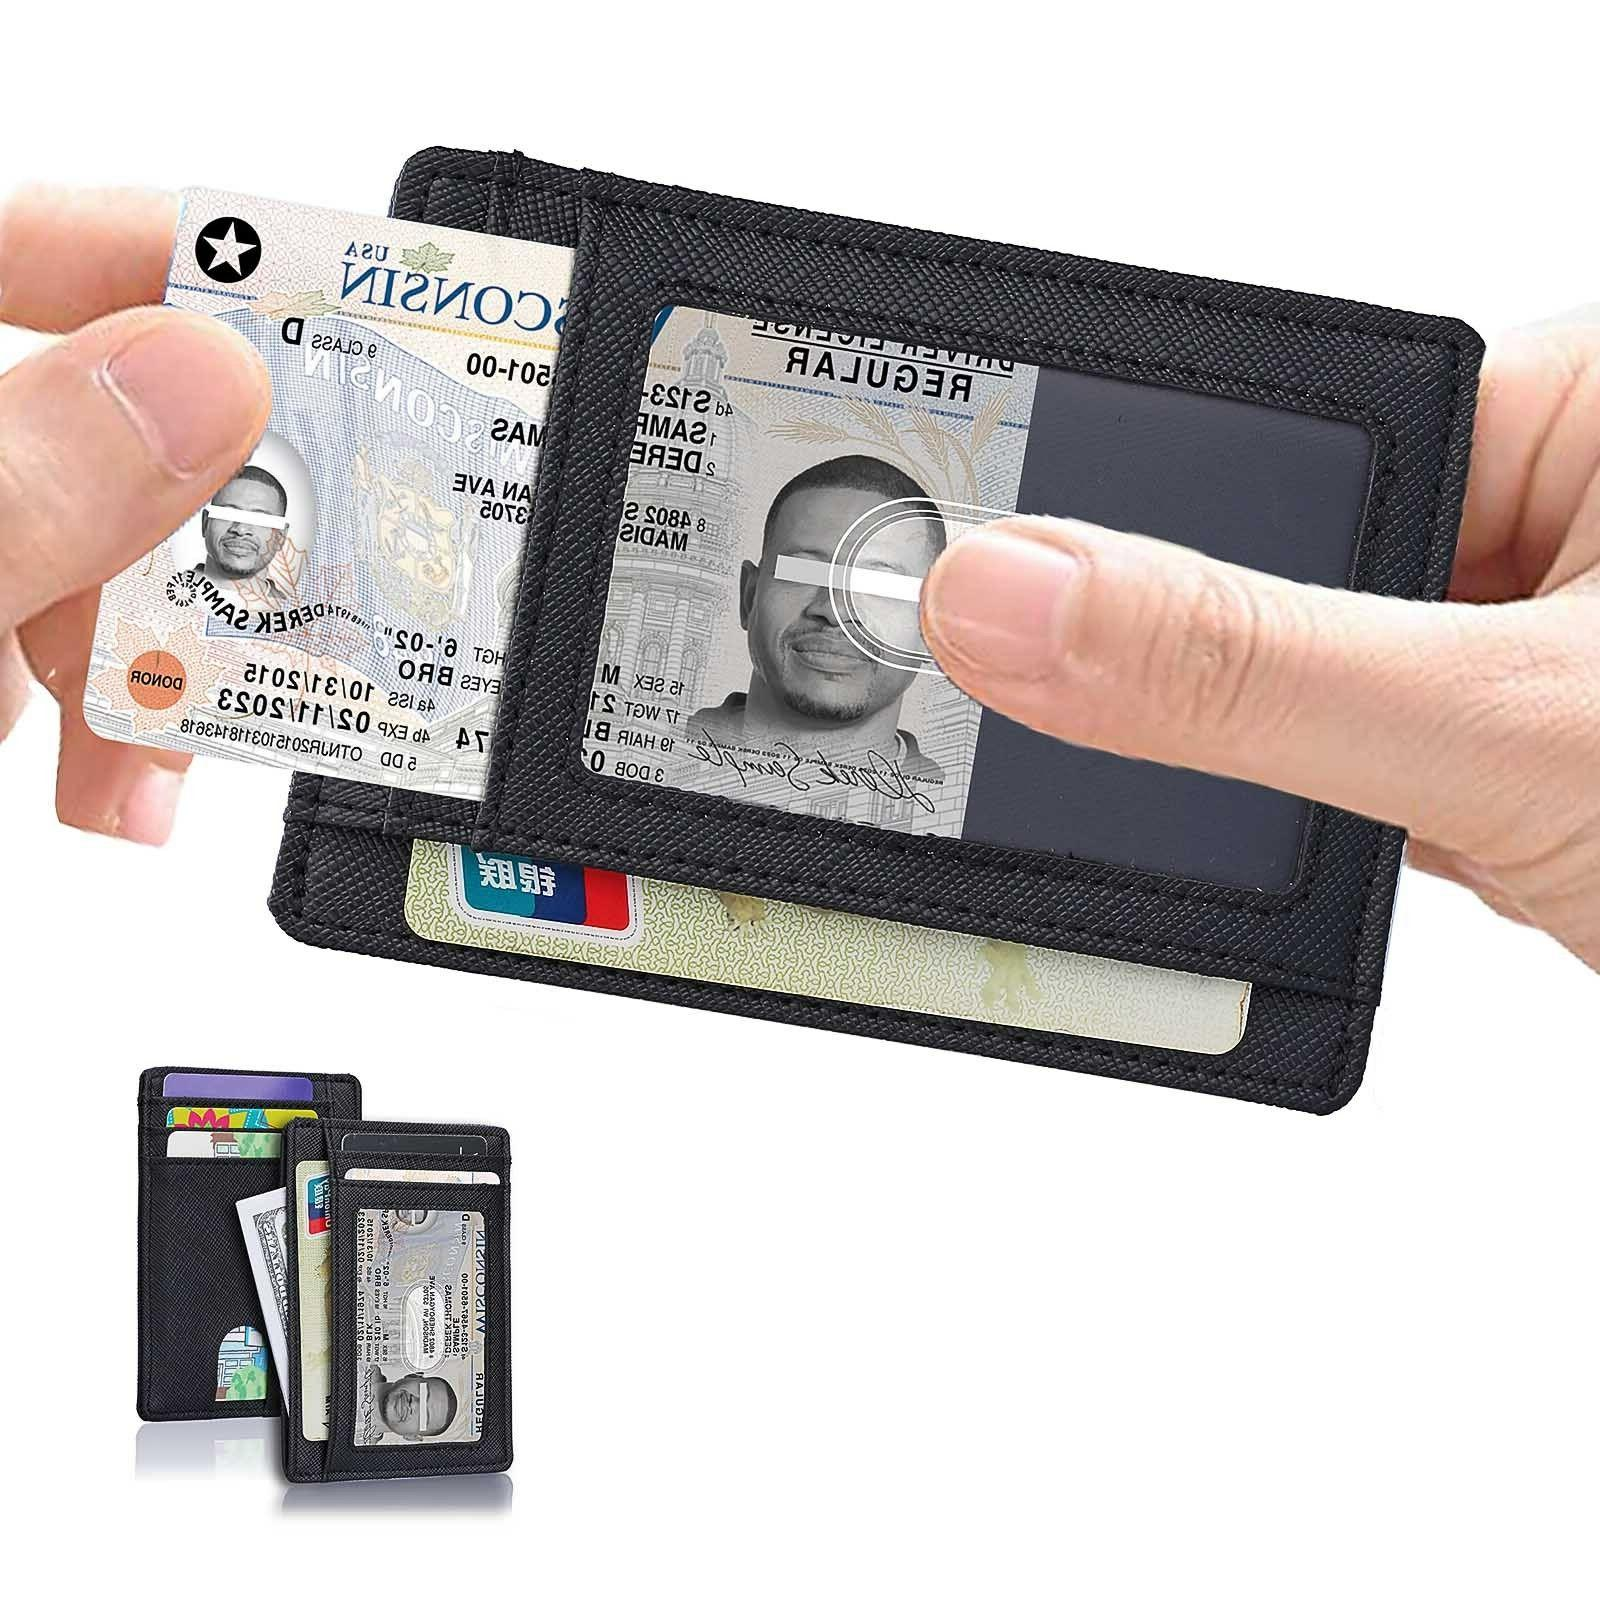 Minimalist Slim Leather Money Holds 6 Cards, and with ID window